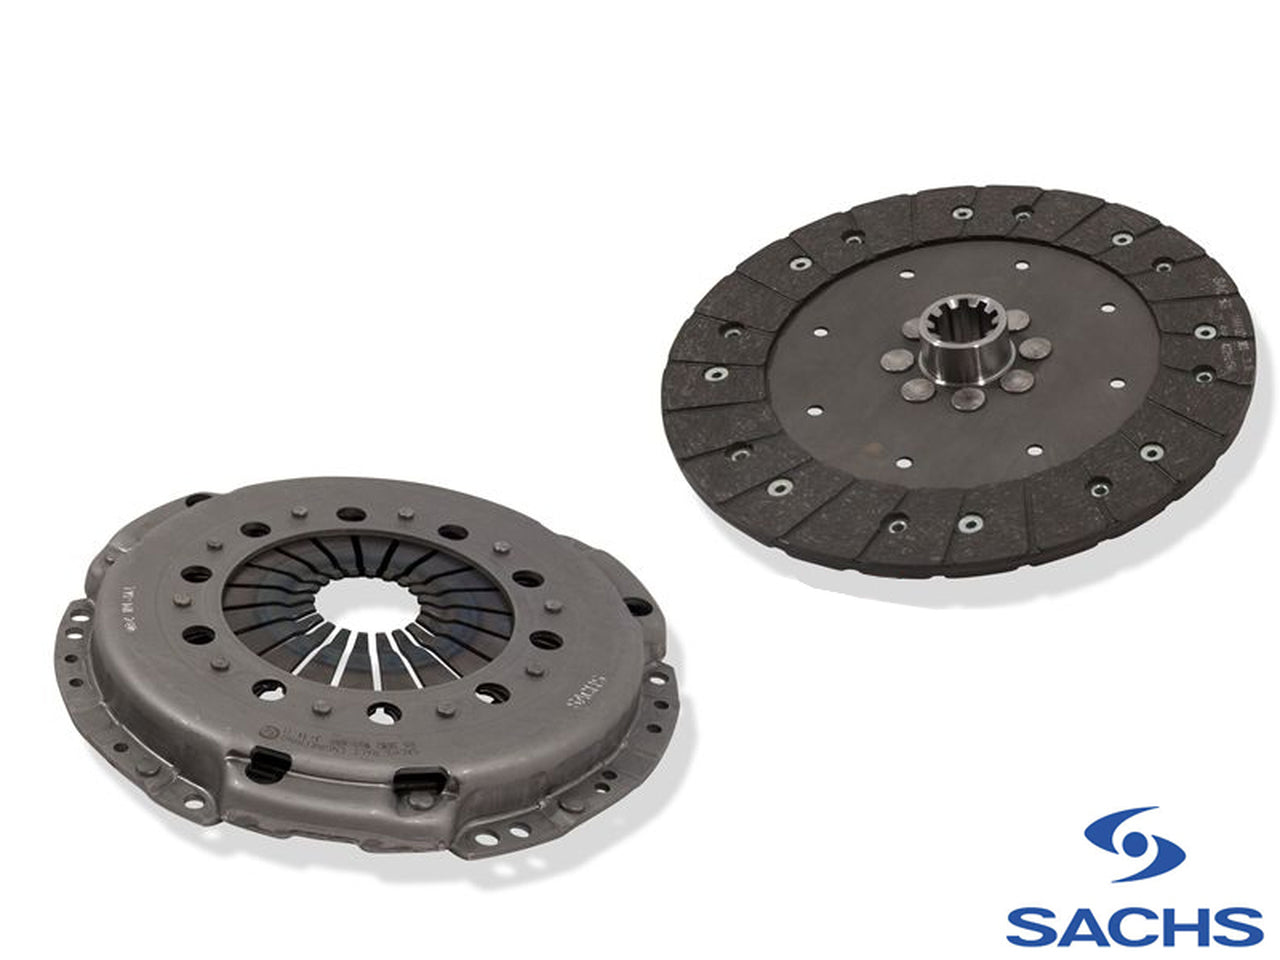 Sachs Performance Clutch Kit for Audi A1 2.0TDI